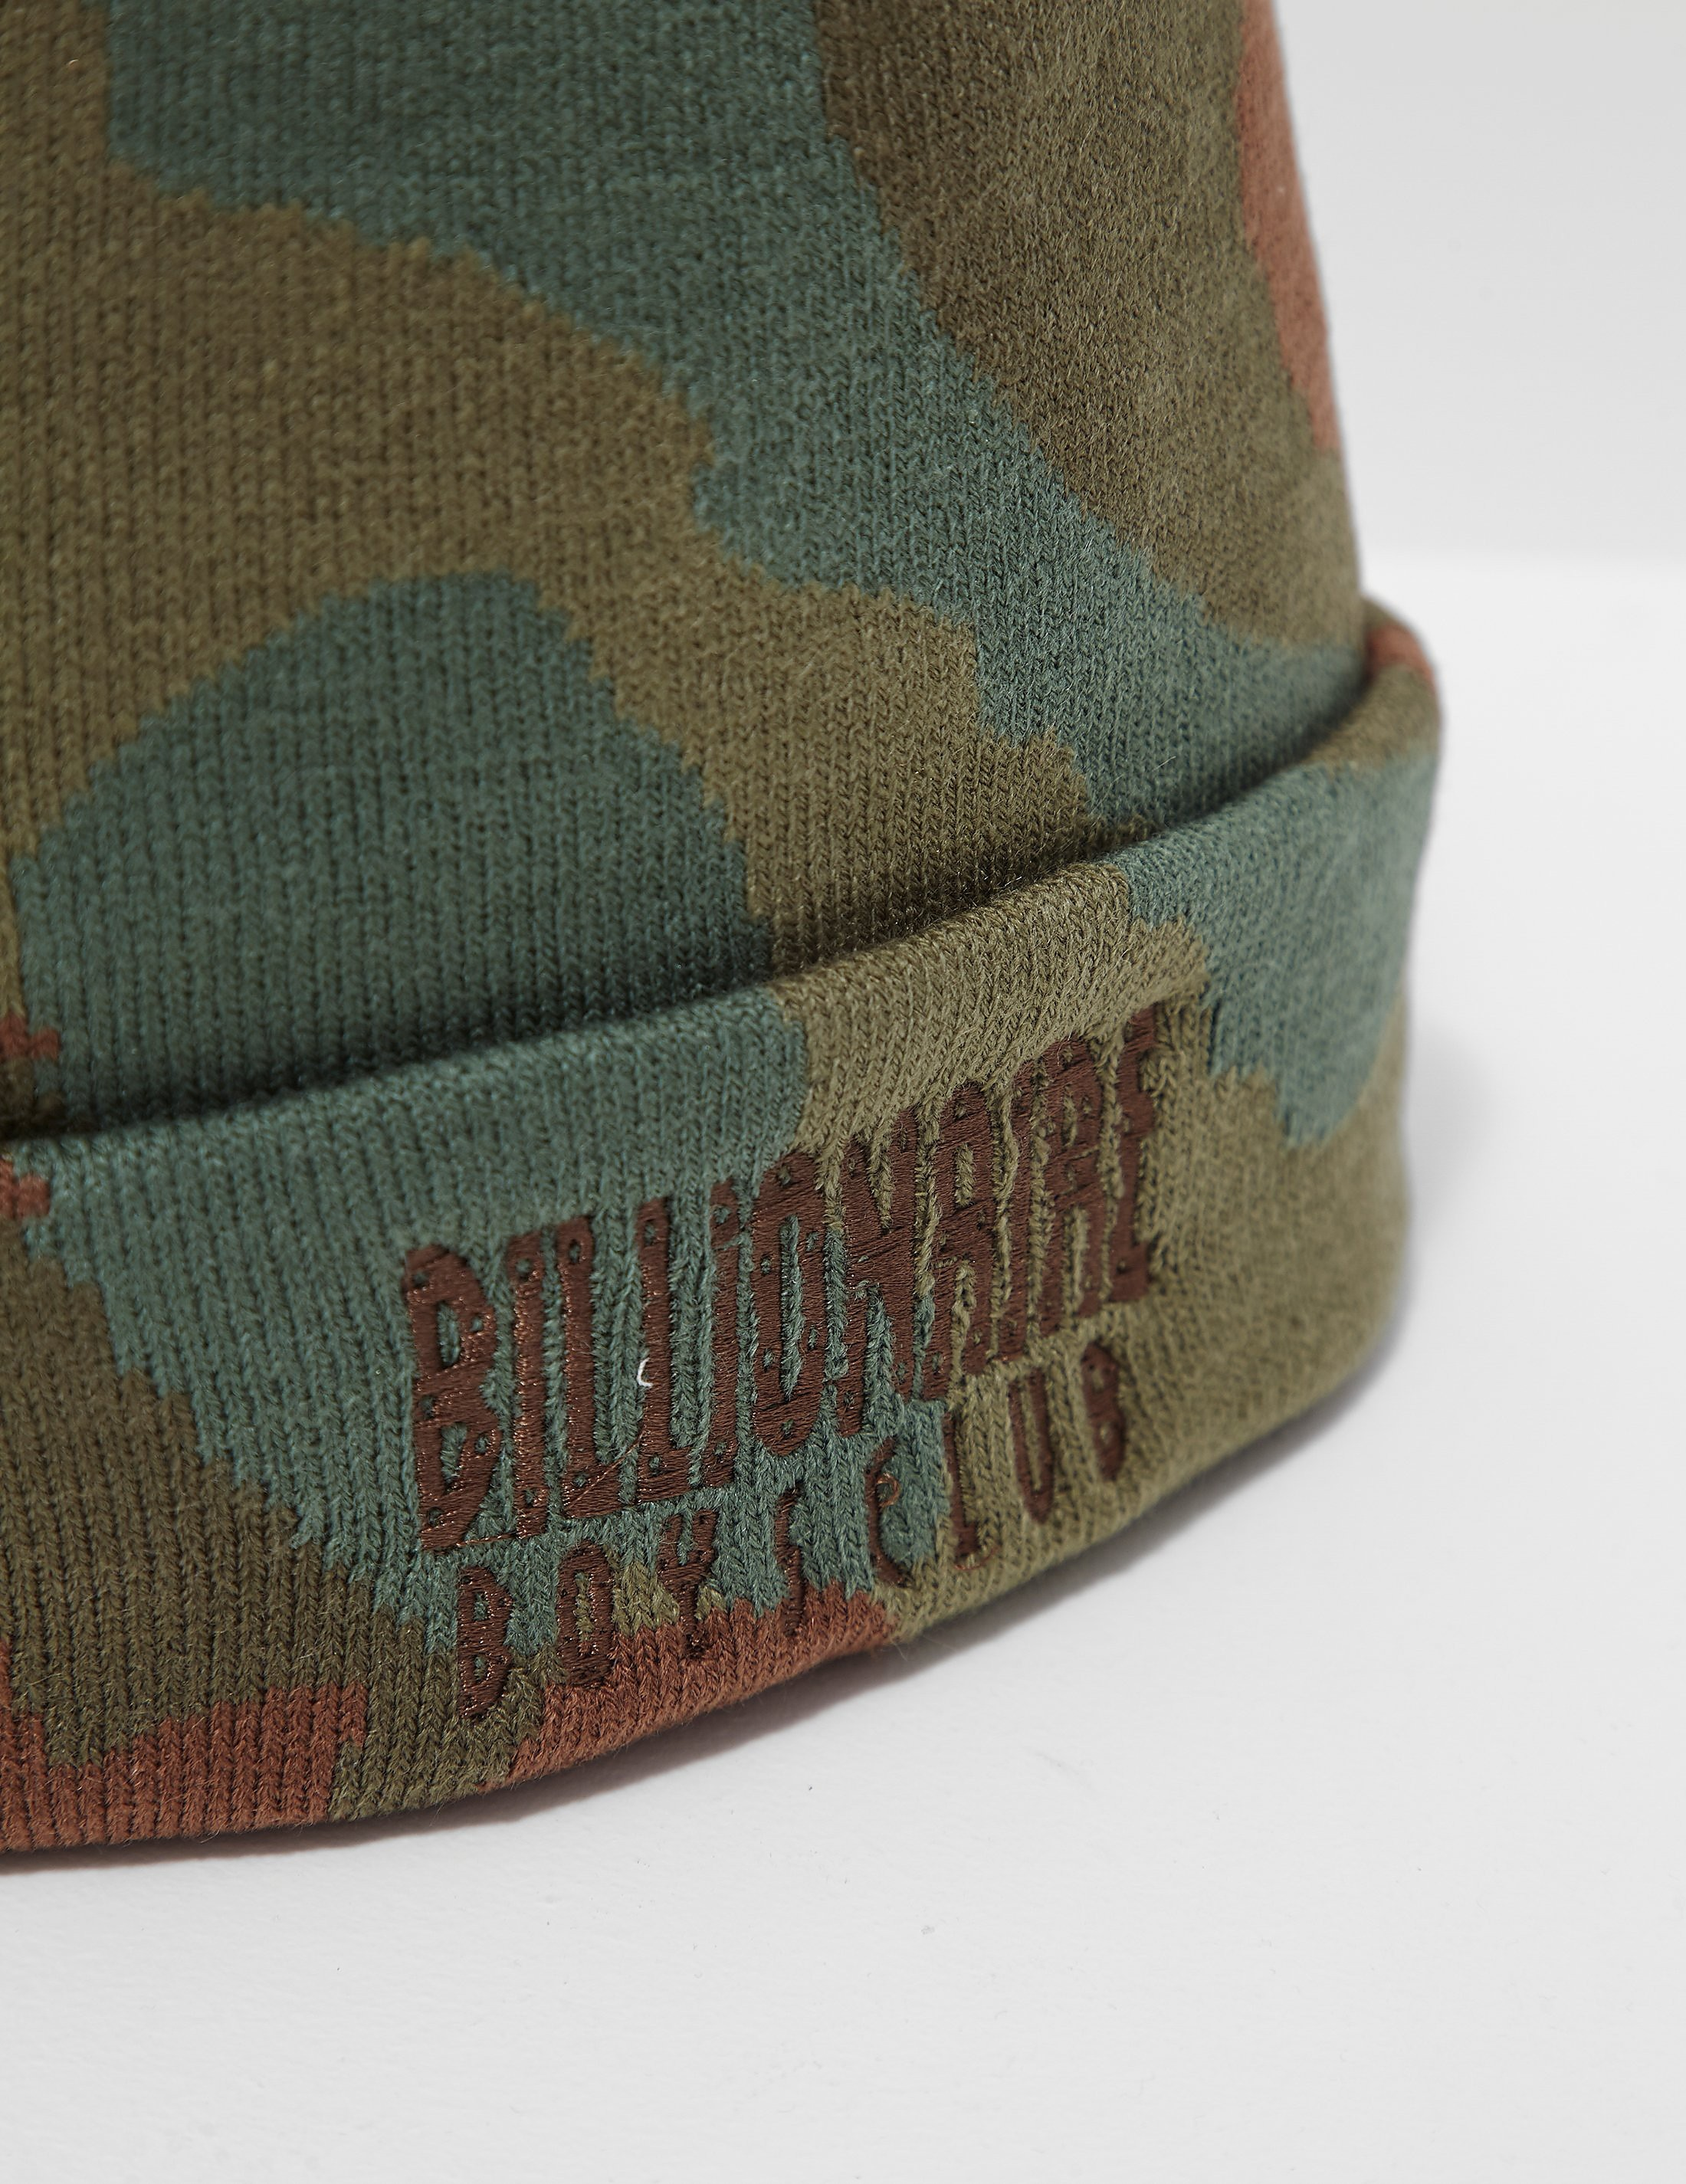 Billionaire Boys Club Space Camouflage Beanie